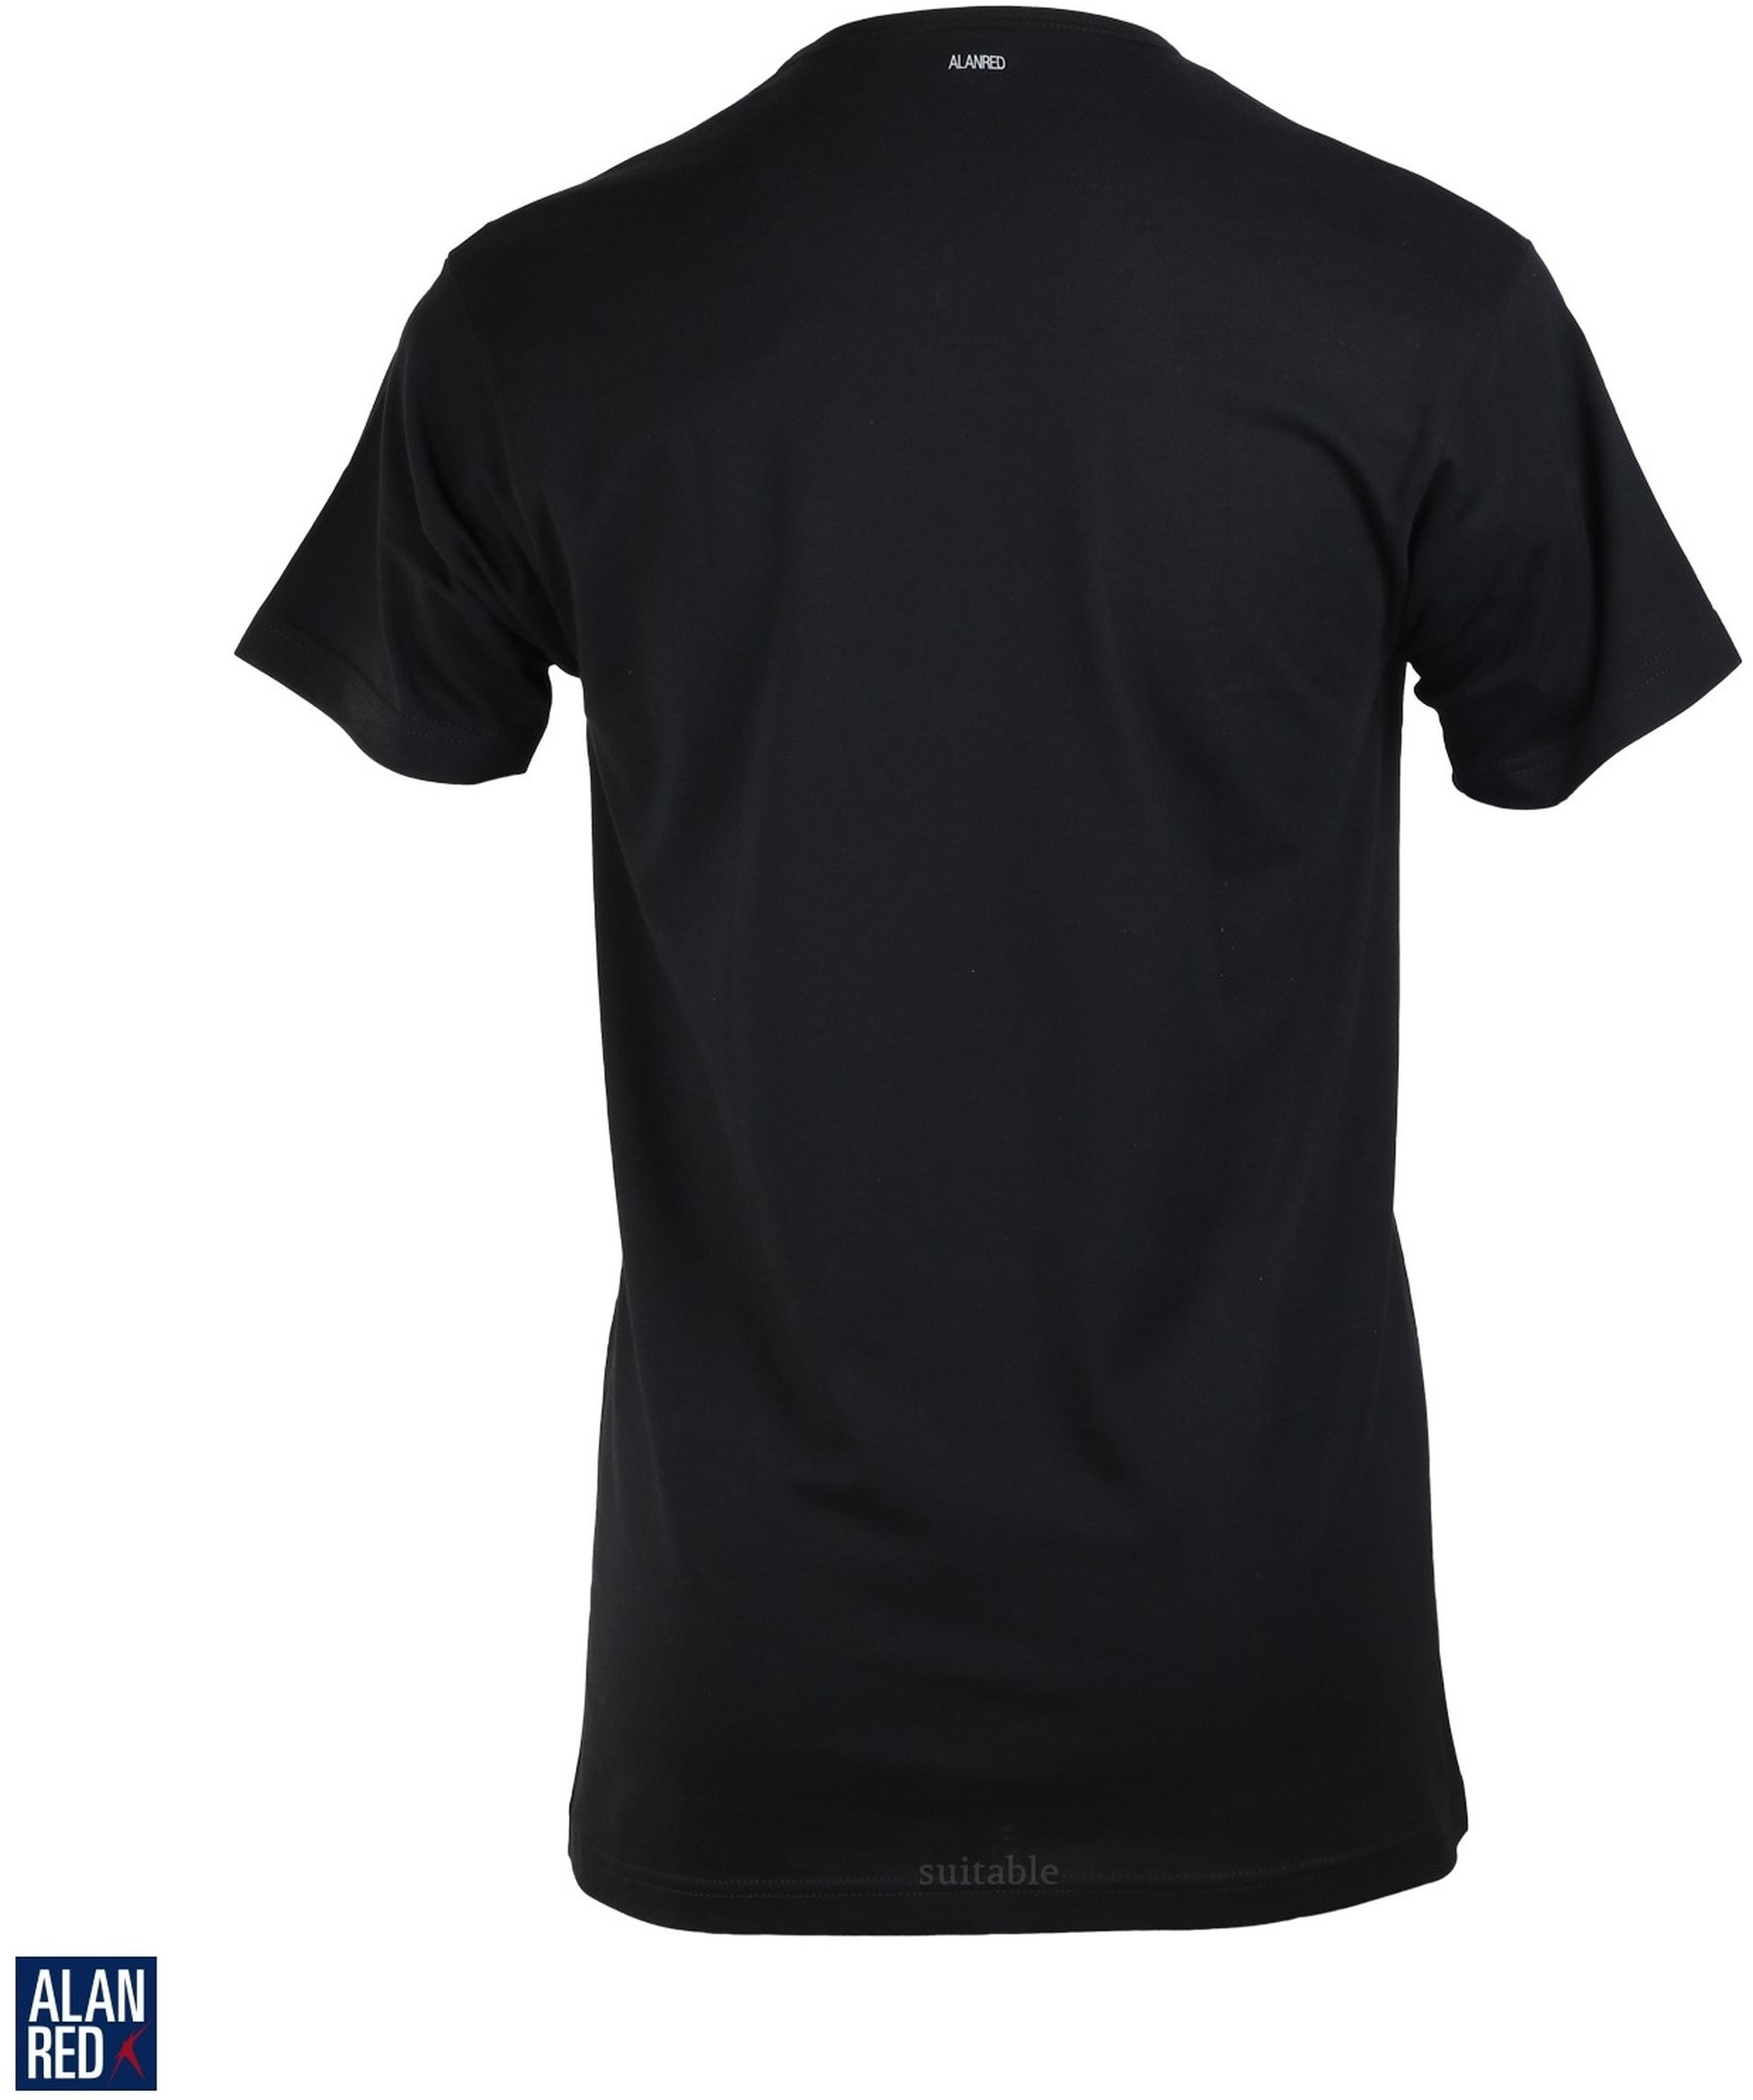 Alan Red Vermont T-shirt V-Neck Black 1-Pack foto 1